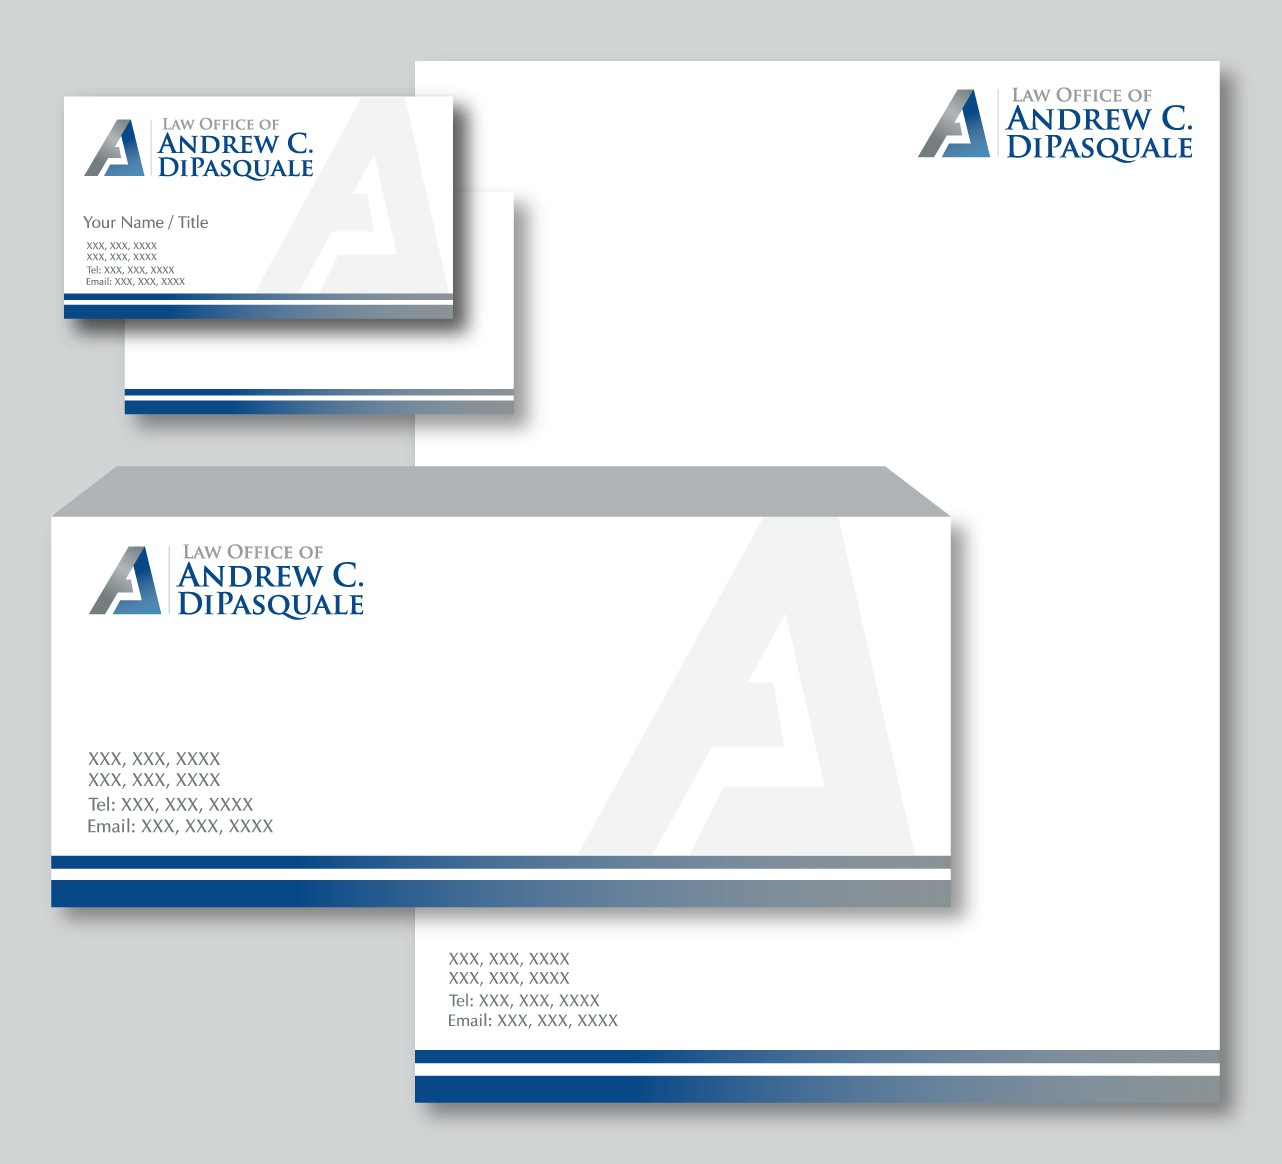 New logo wanted for Law Office of Andrew C. DiPasquale